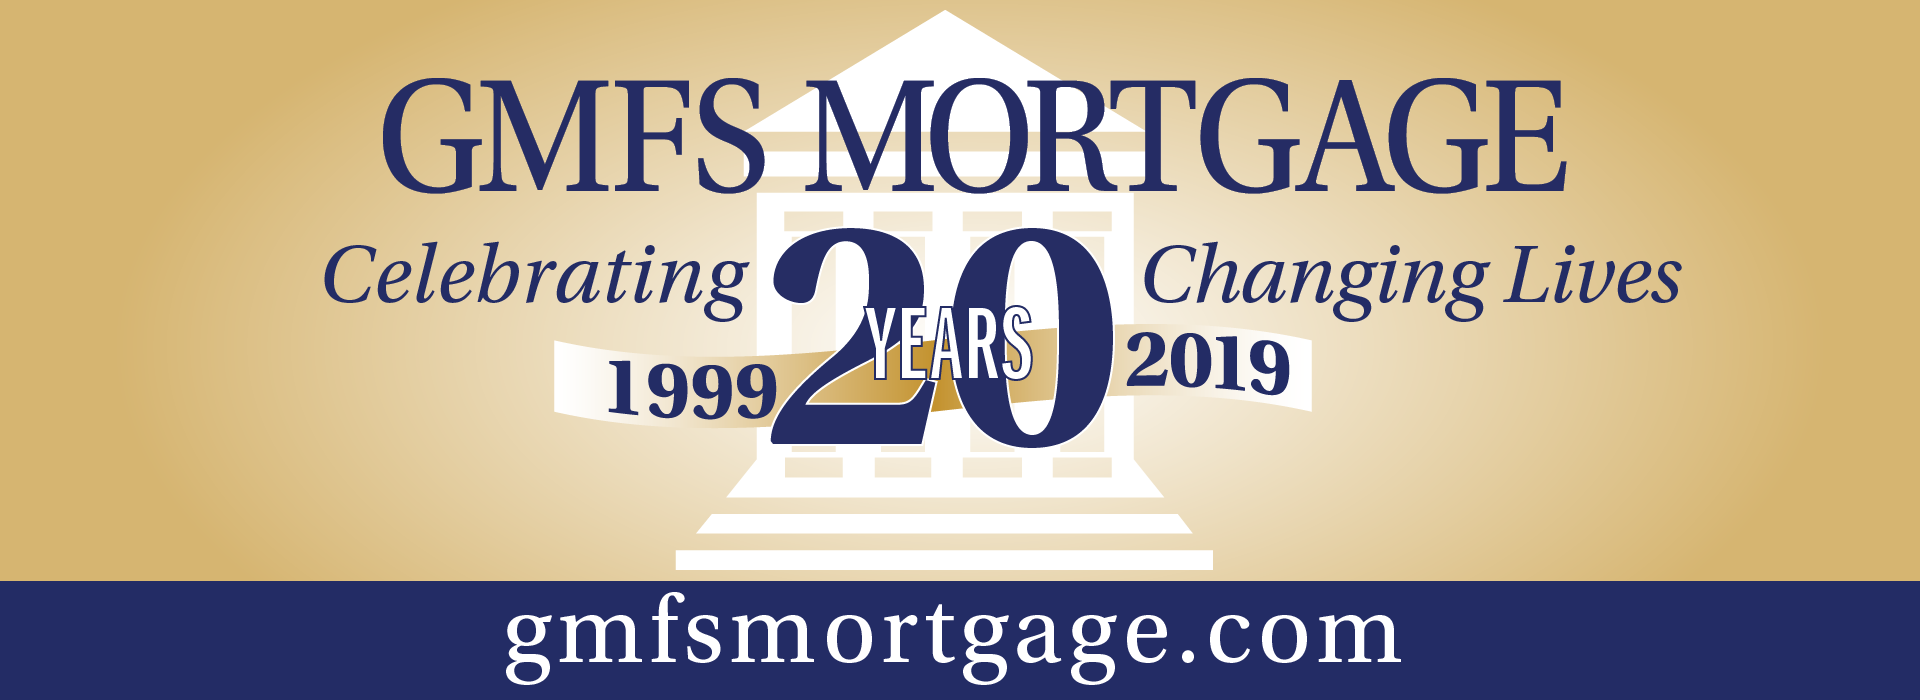 GMFS Mortgage - Celebrating 20 years of Changing Lives!